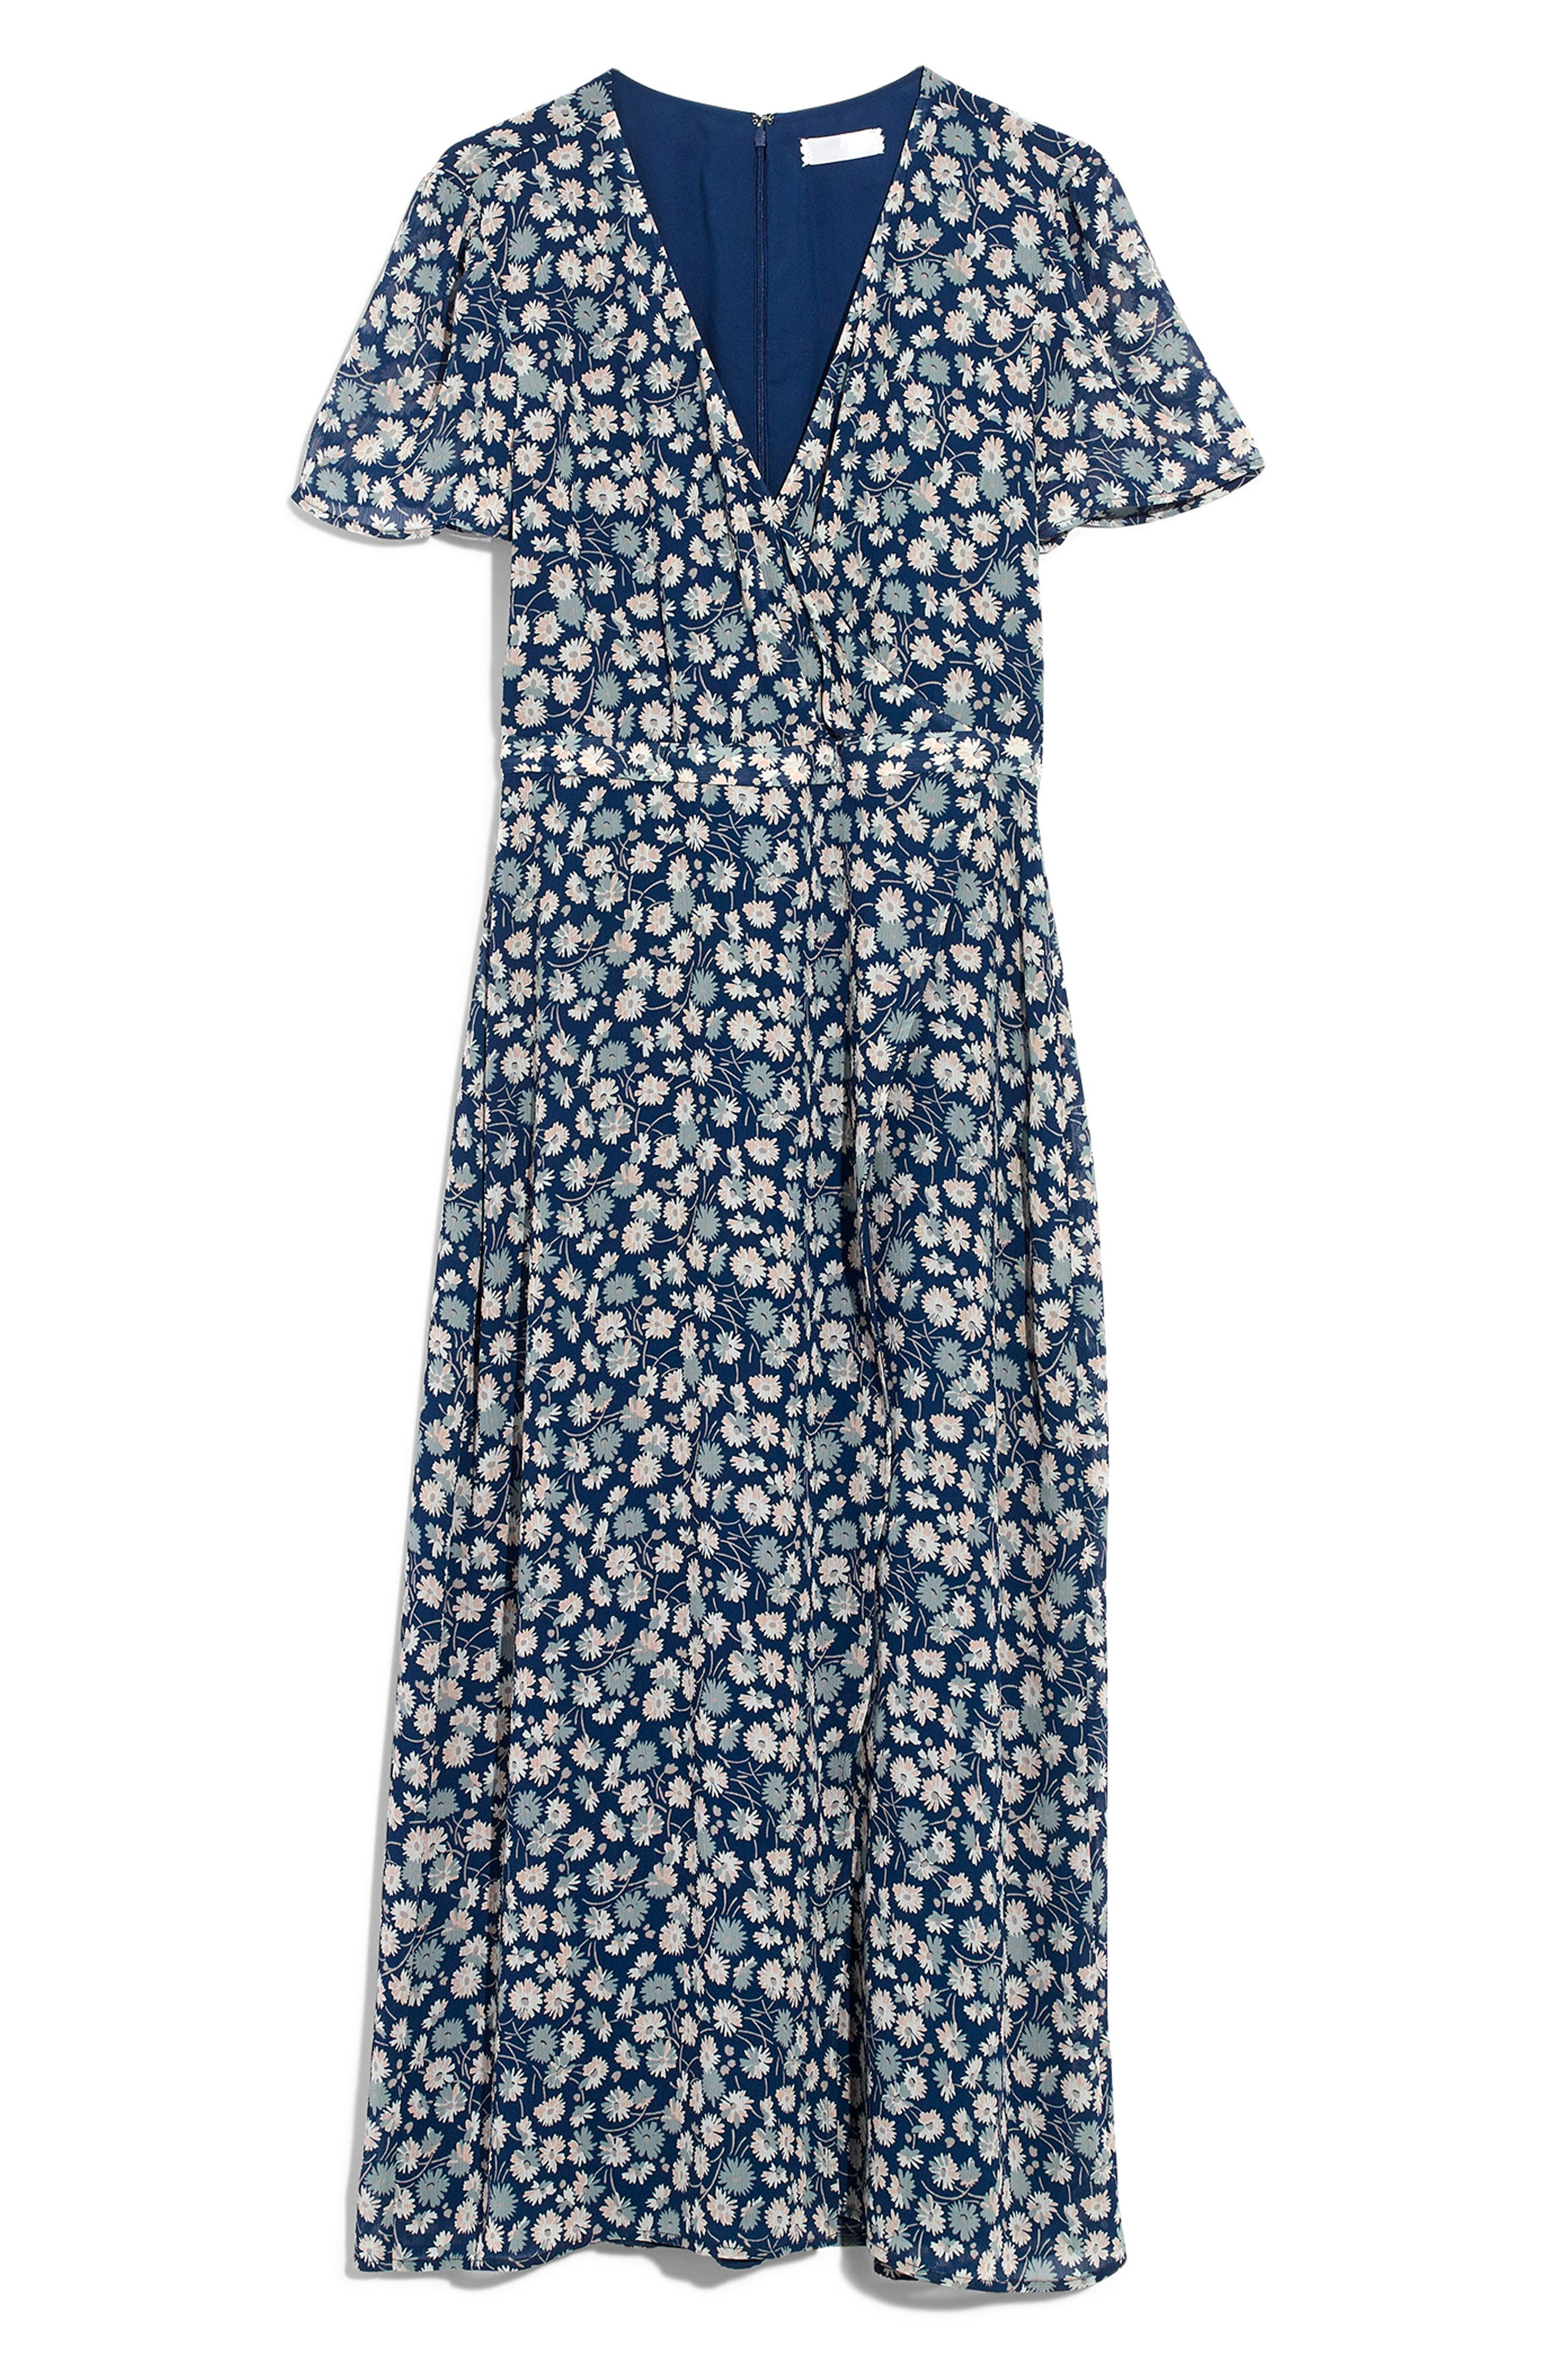 MADEWELL, Floral Wrap Front Midi Dress, Alternate thumbnail 3, color, 400